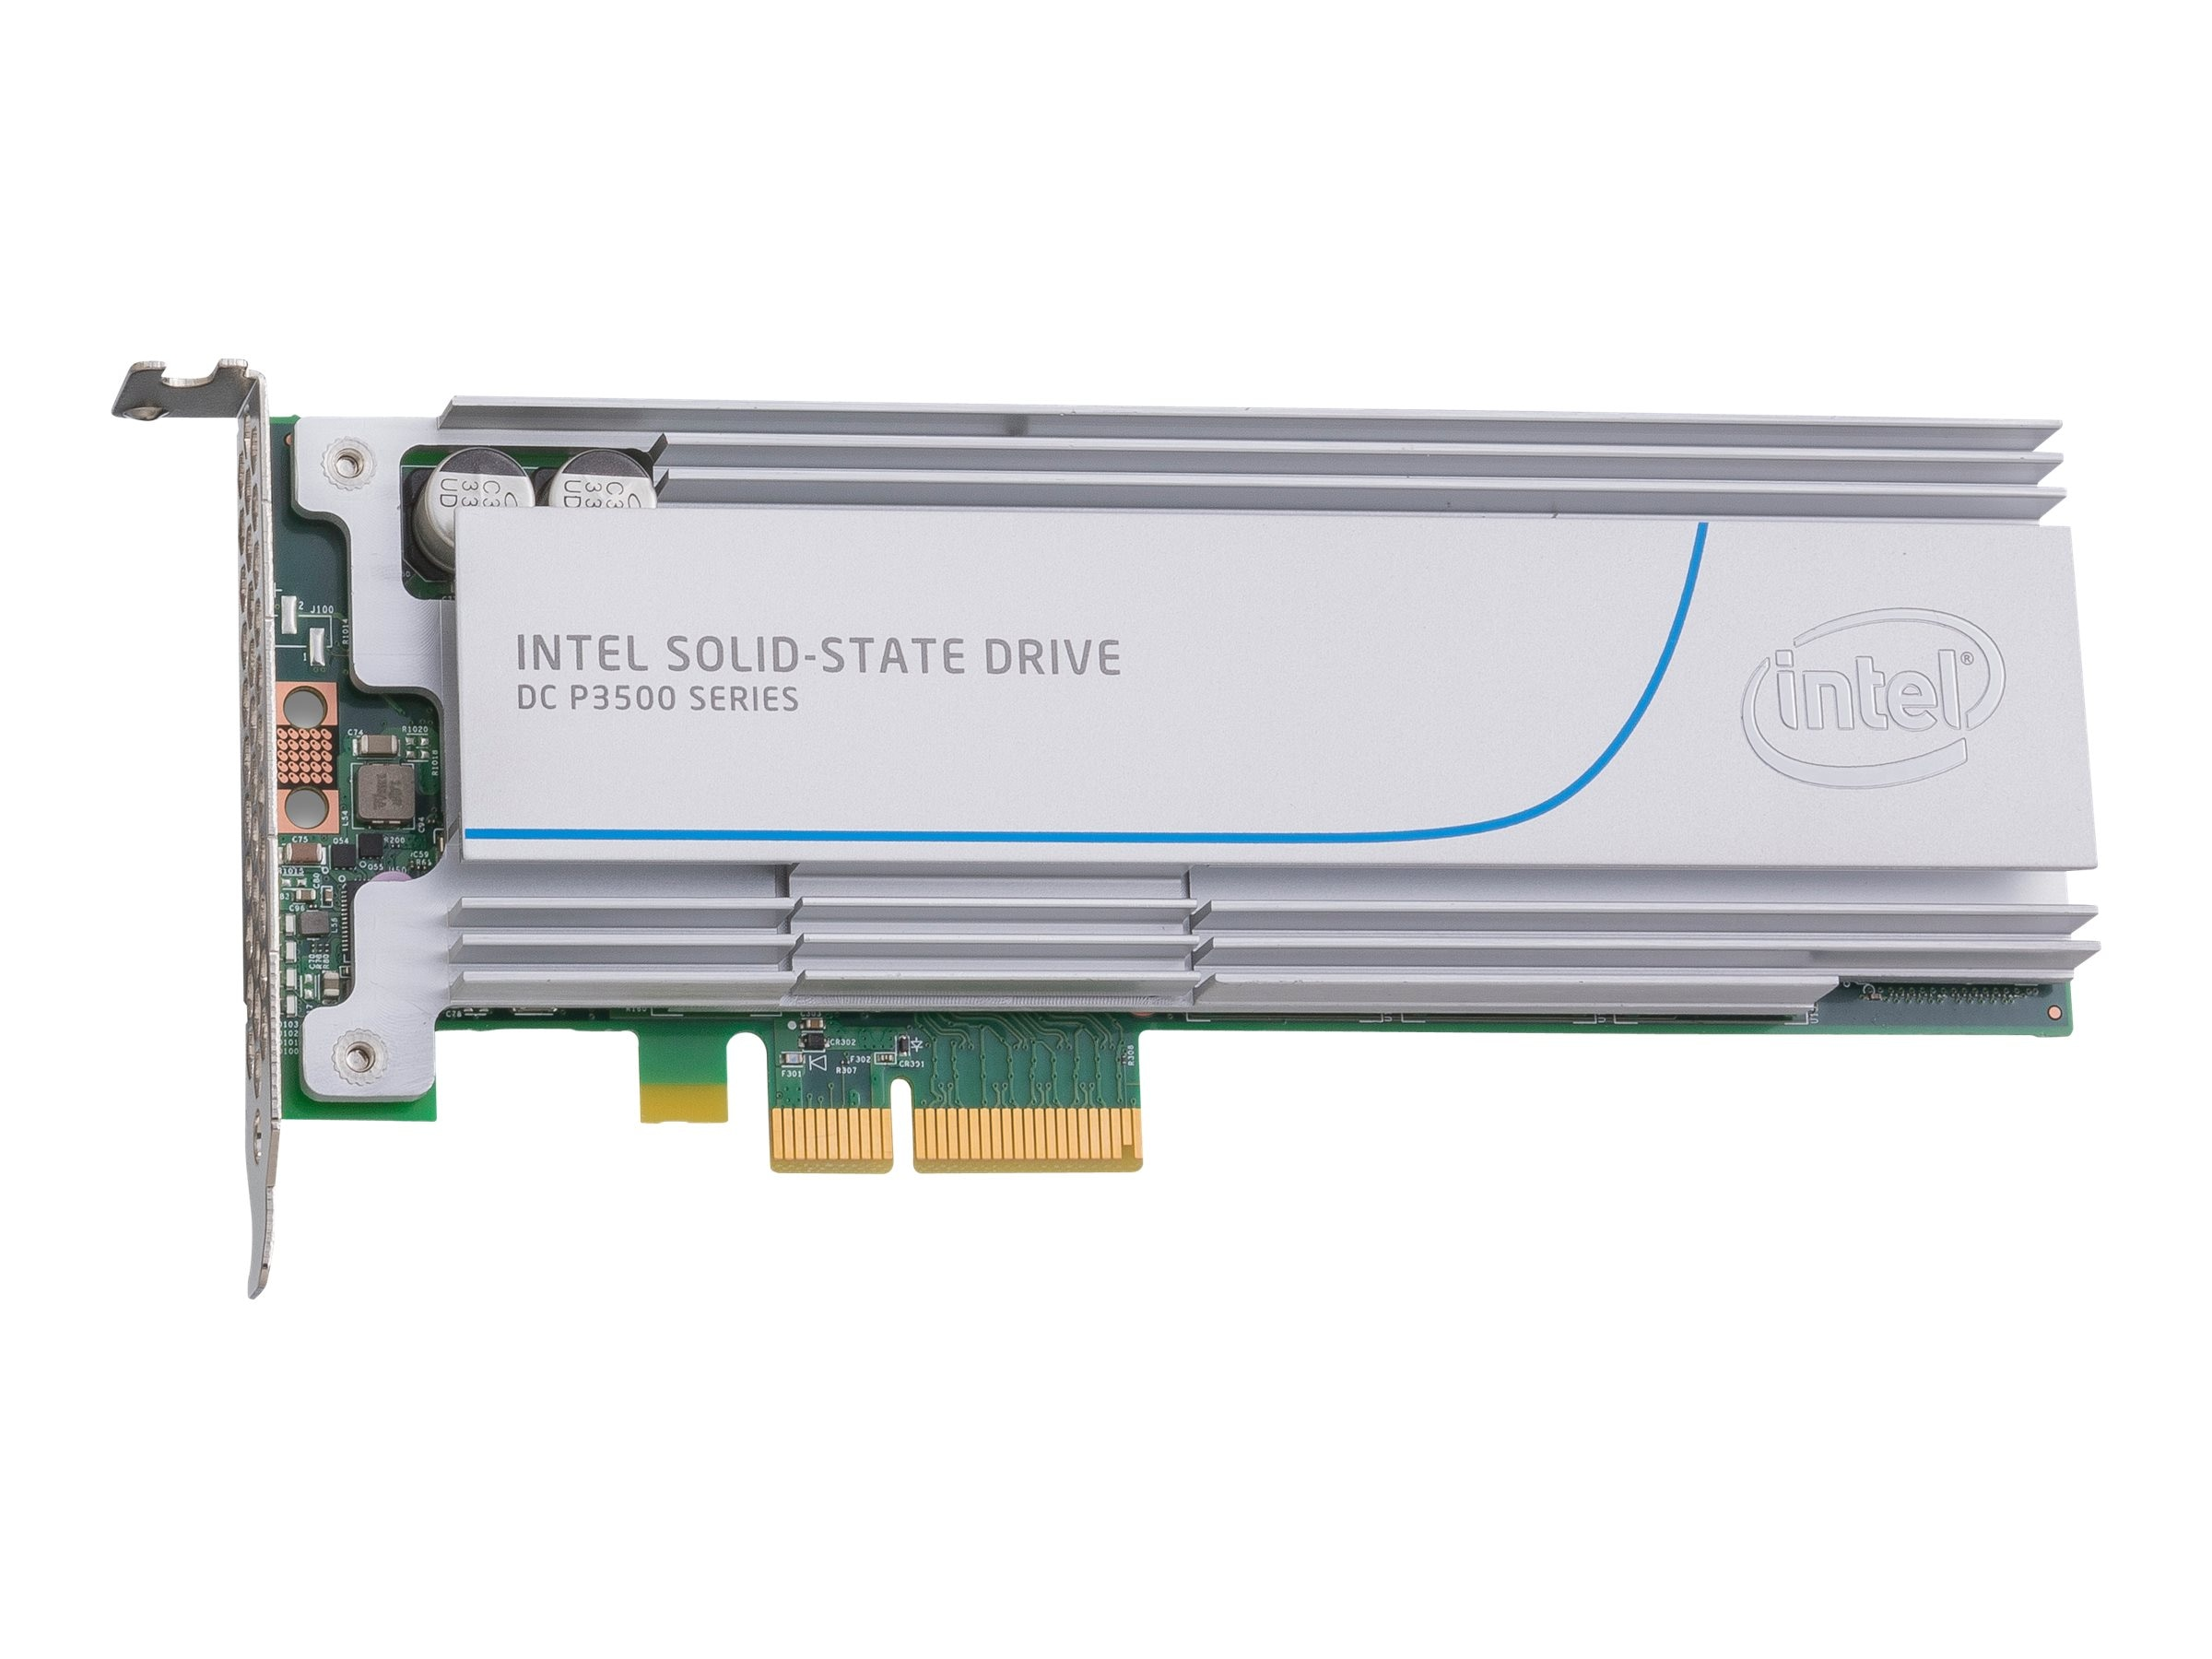 Intel 400GB DC P3500 Series Half Height Solid State Drive